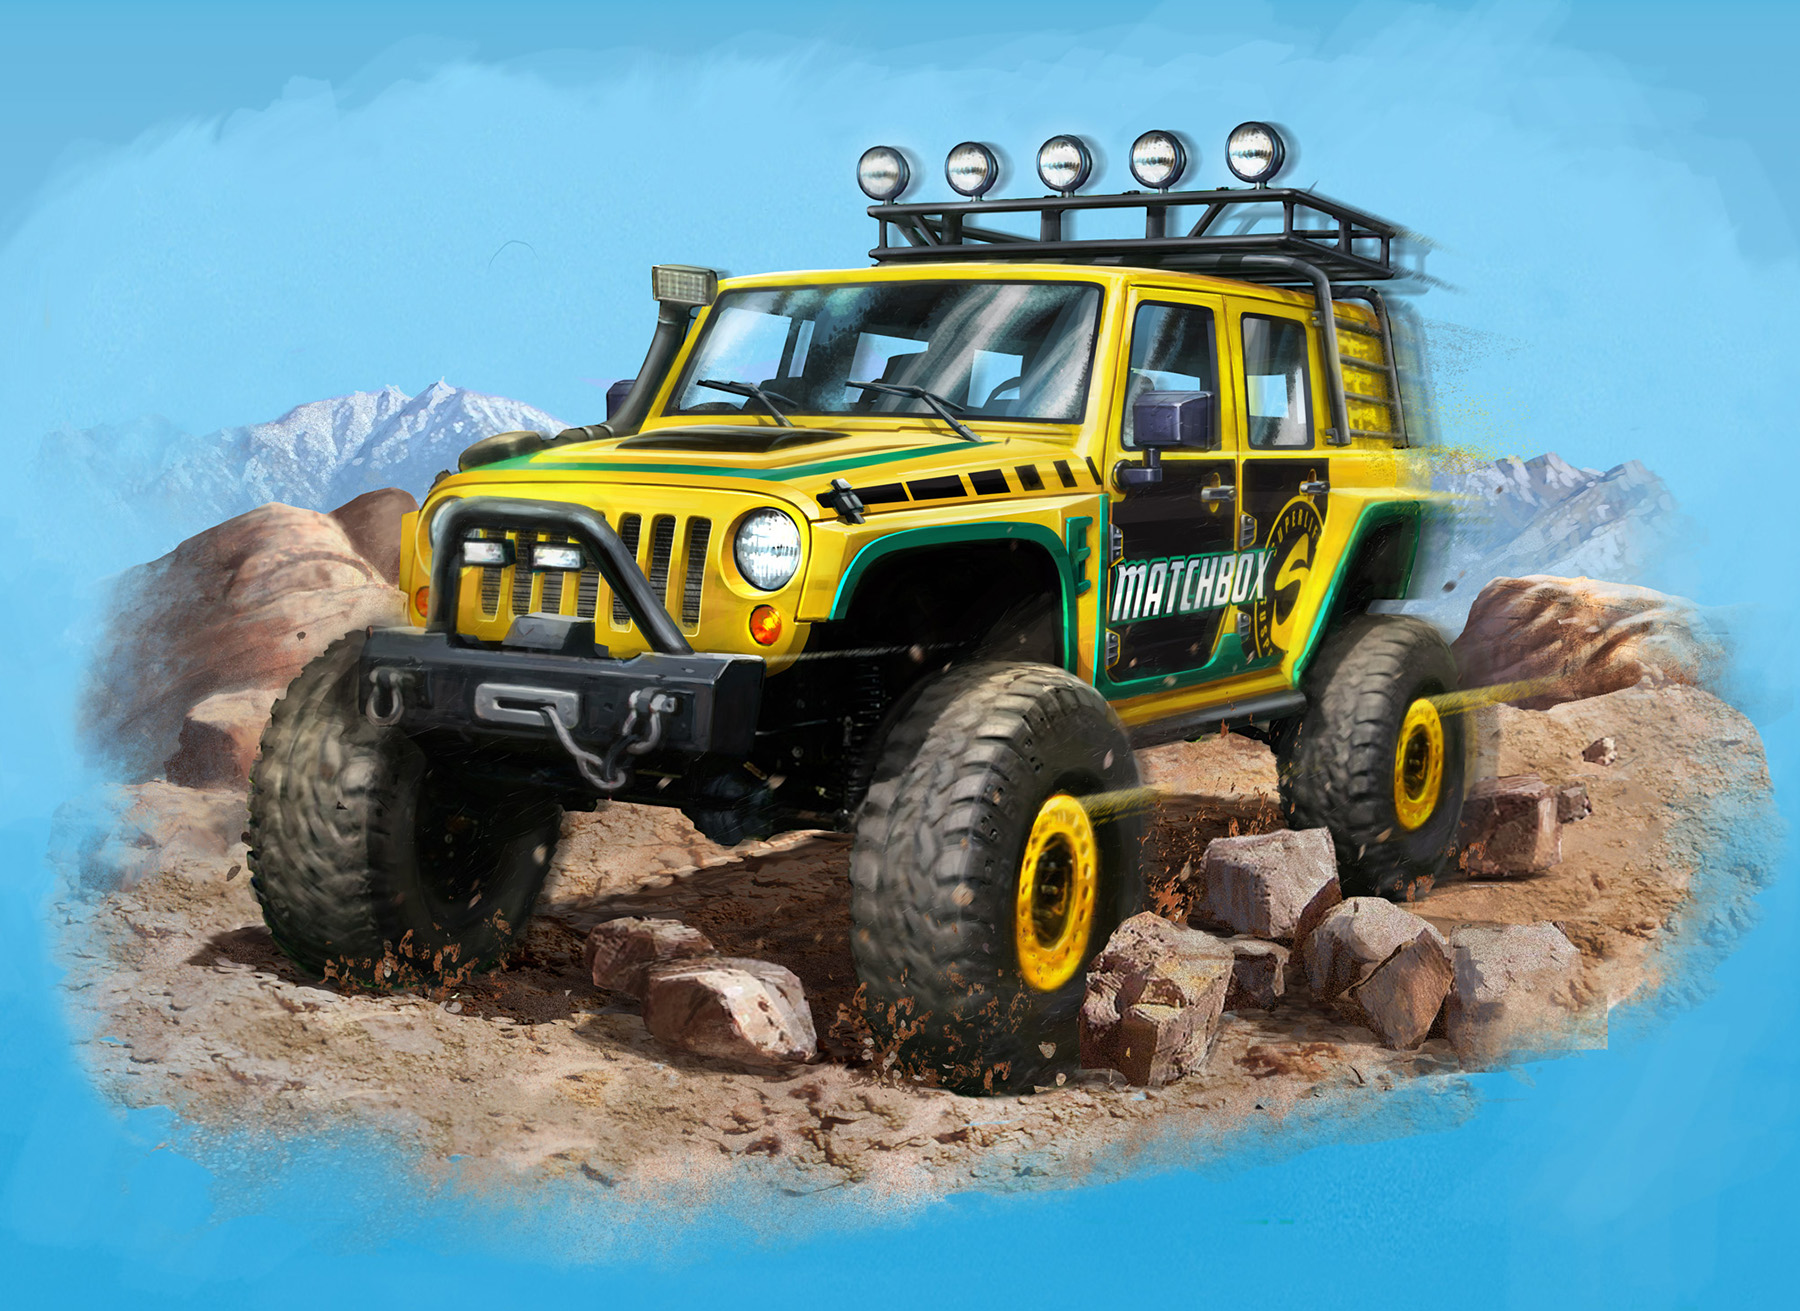 Jeep_Superlift_final_cropped.jpg